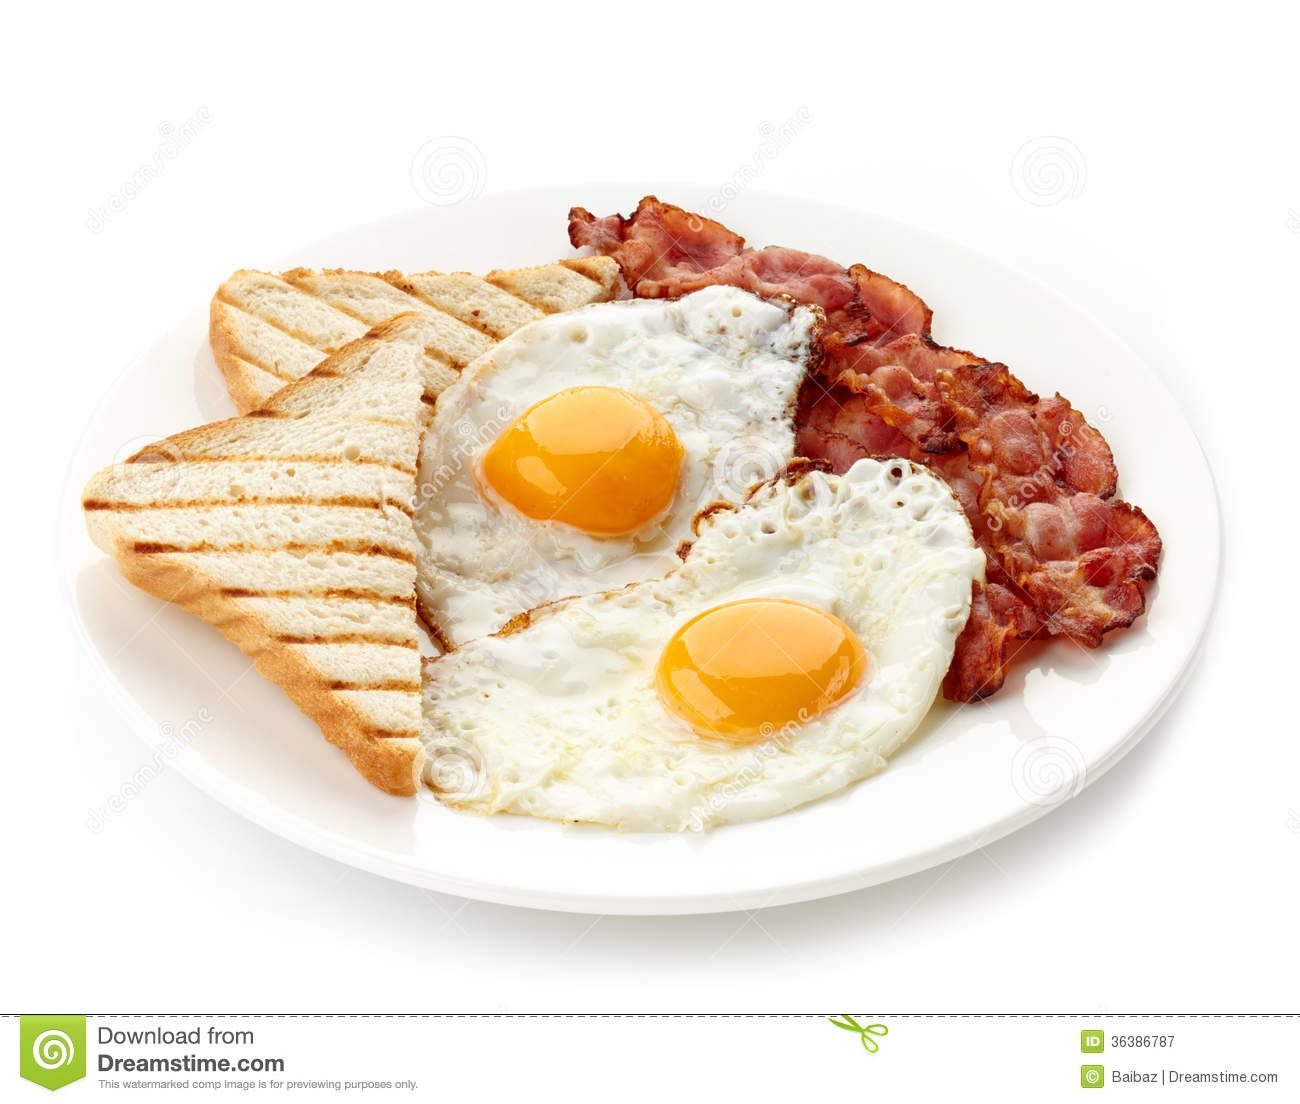 breakfast-fried-eggs-bacon-toasts-plate-isolated-white-background-36386787.jpg (1300×1104)